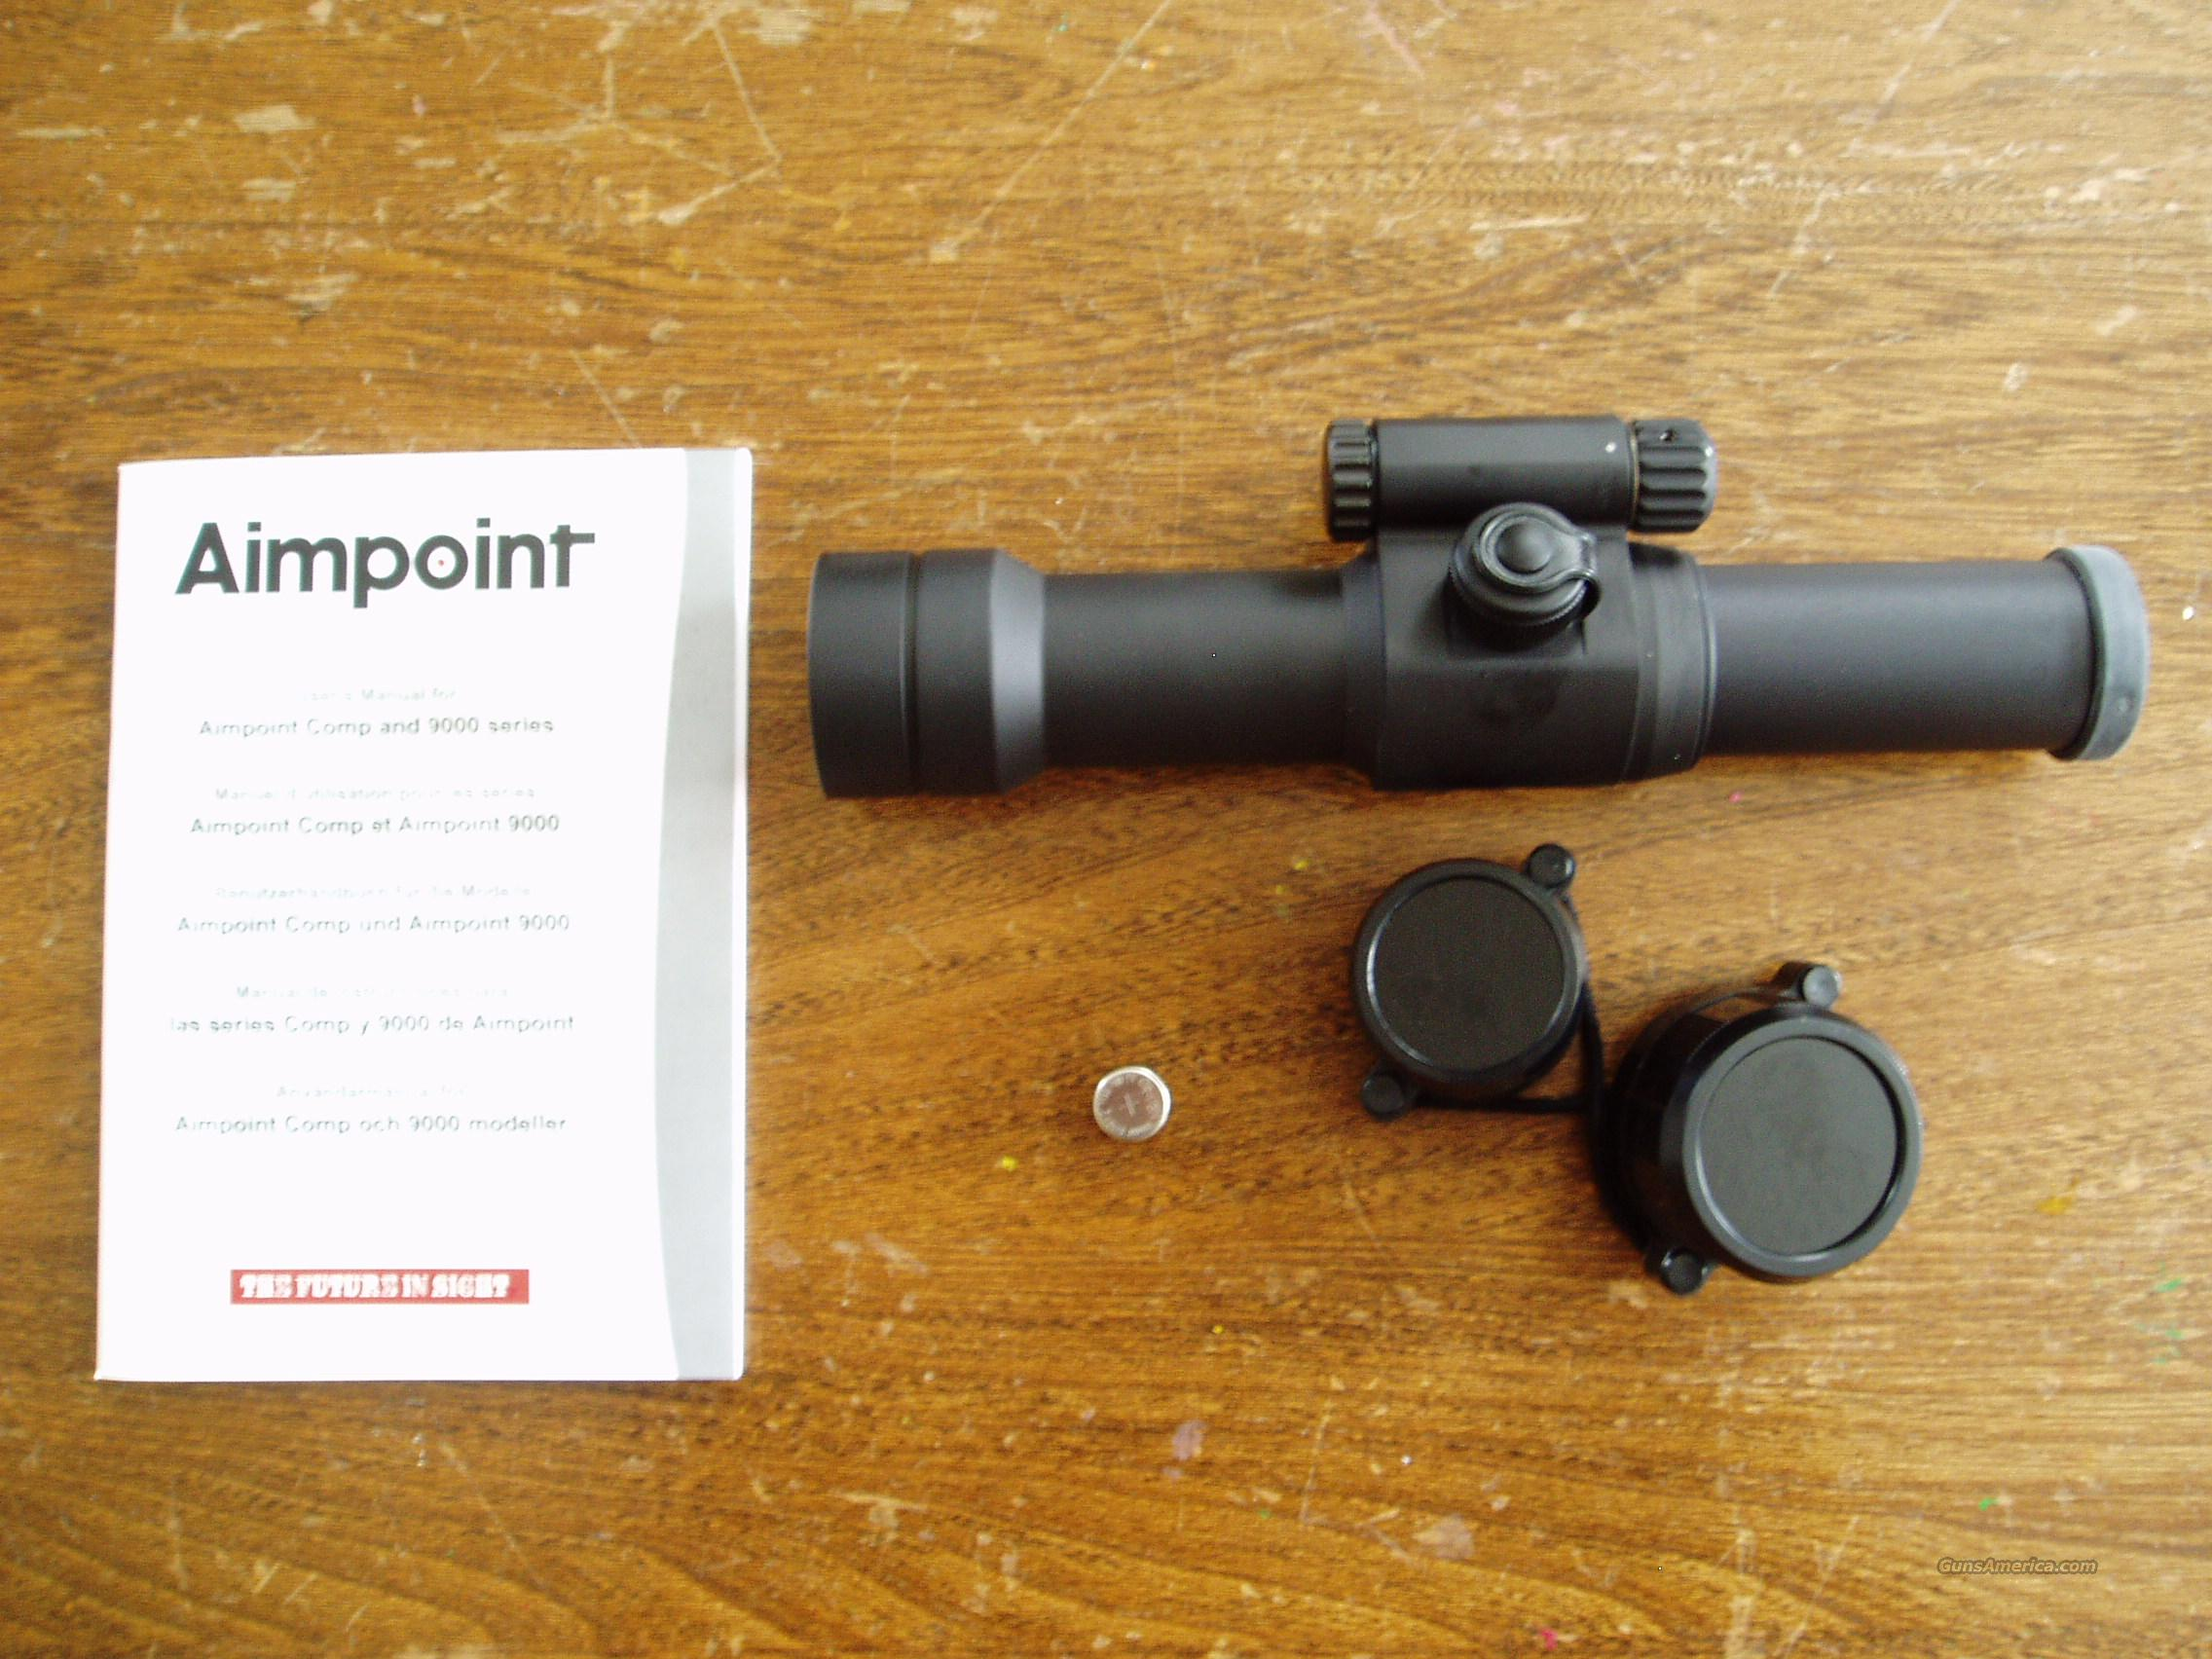 Aimpoint 9000L, 4 MOA Dot, Red Dot Scope  Non-Guns > Scopes/Mounts/Rings & Optics > Tactical Scopes > Red Dot